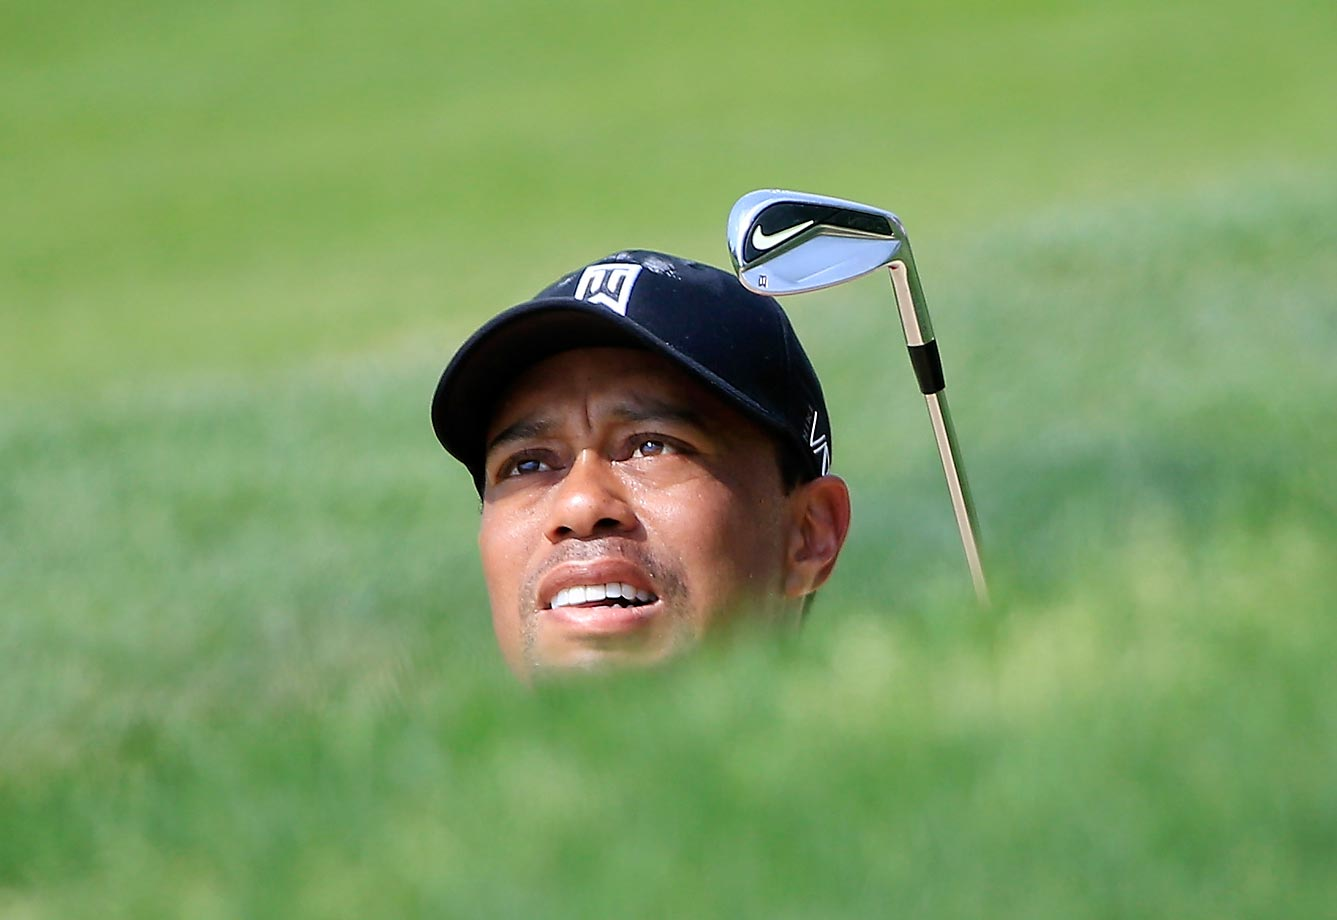 Tiger Woods stares down his shot on the 17th hole during the last round of The Memorial Tournament in Dublin, Ohio, on June 7.